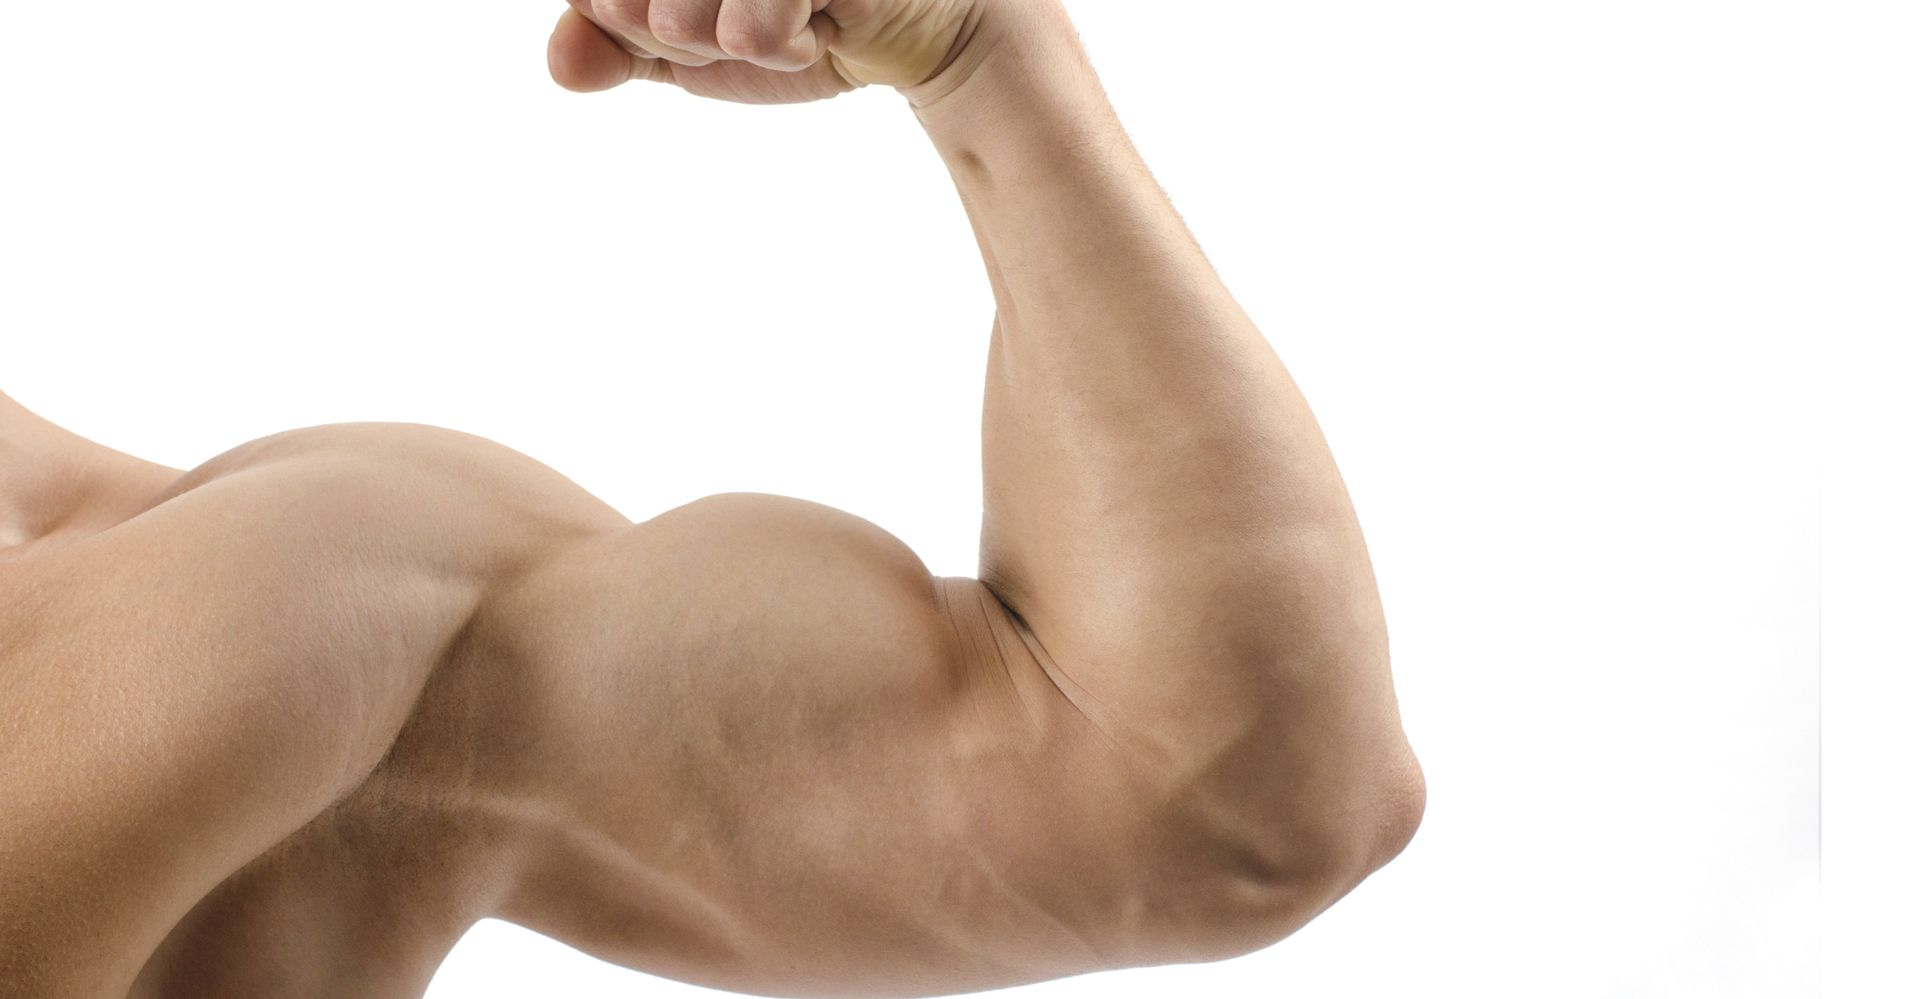 This Is Why Your Biceps Arent Defined And How To Improve Them